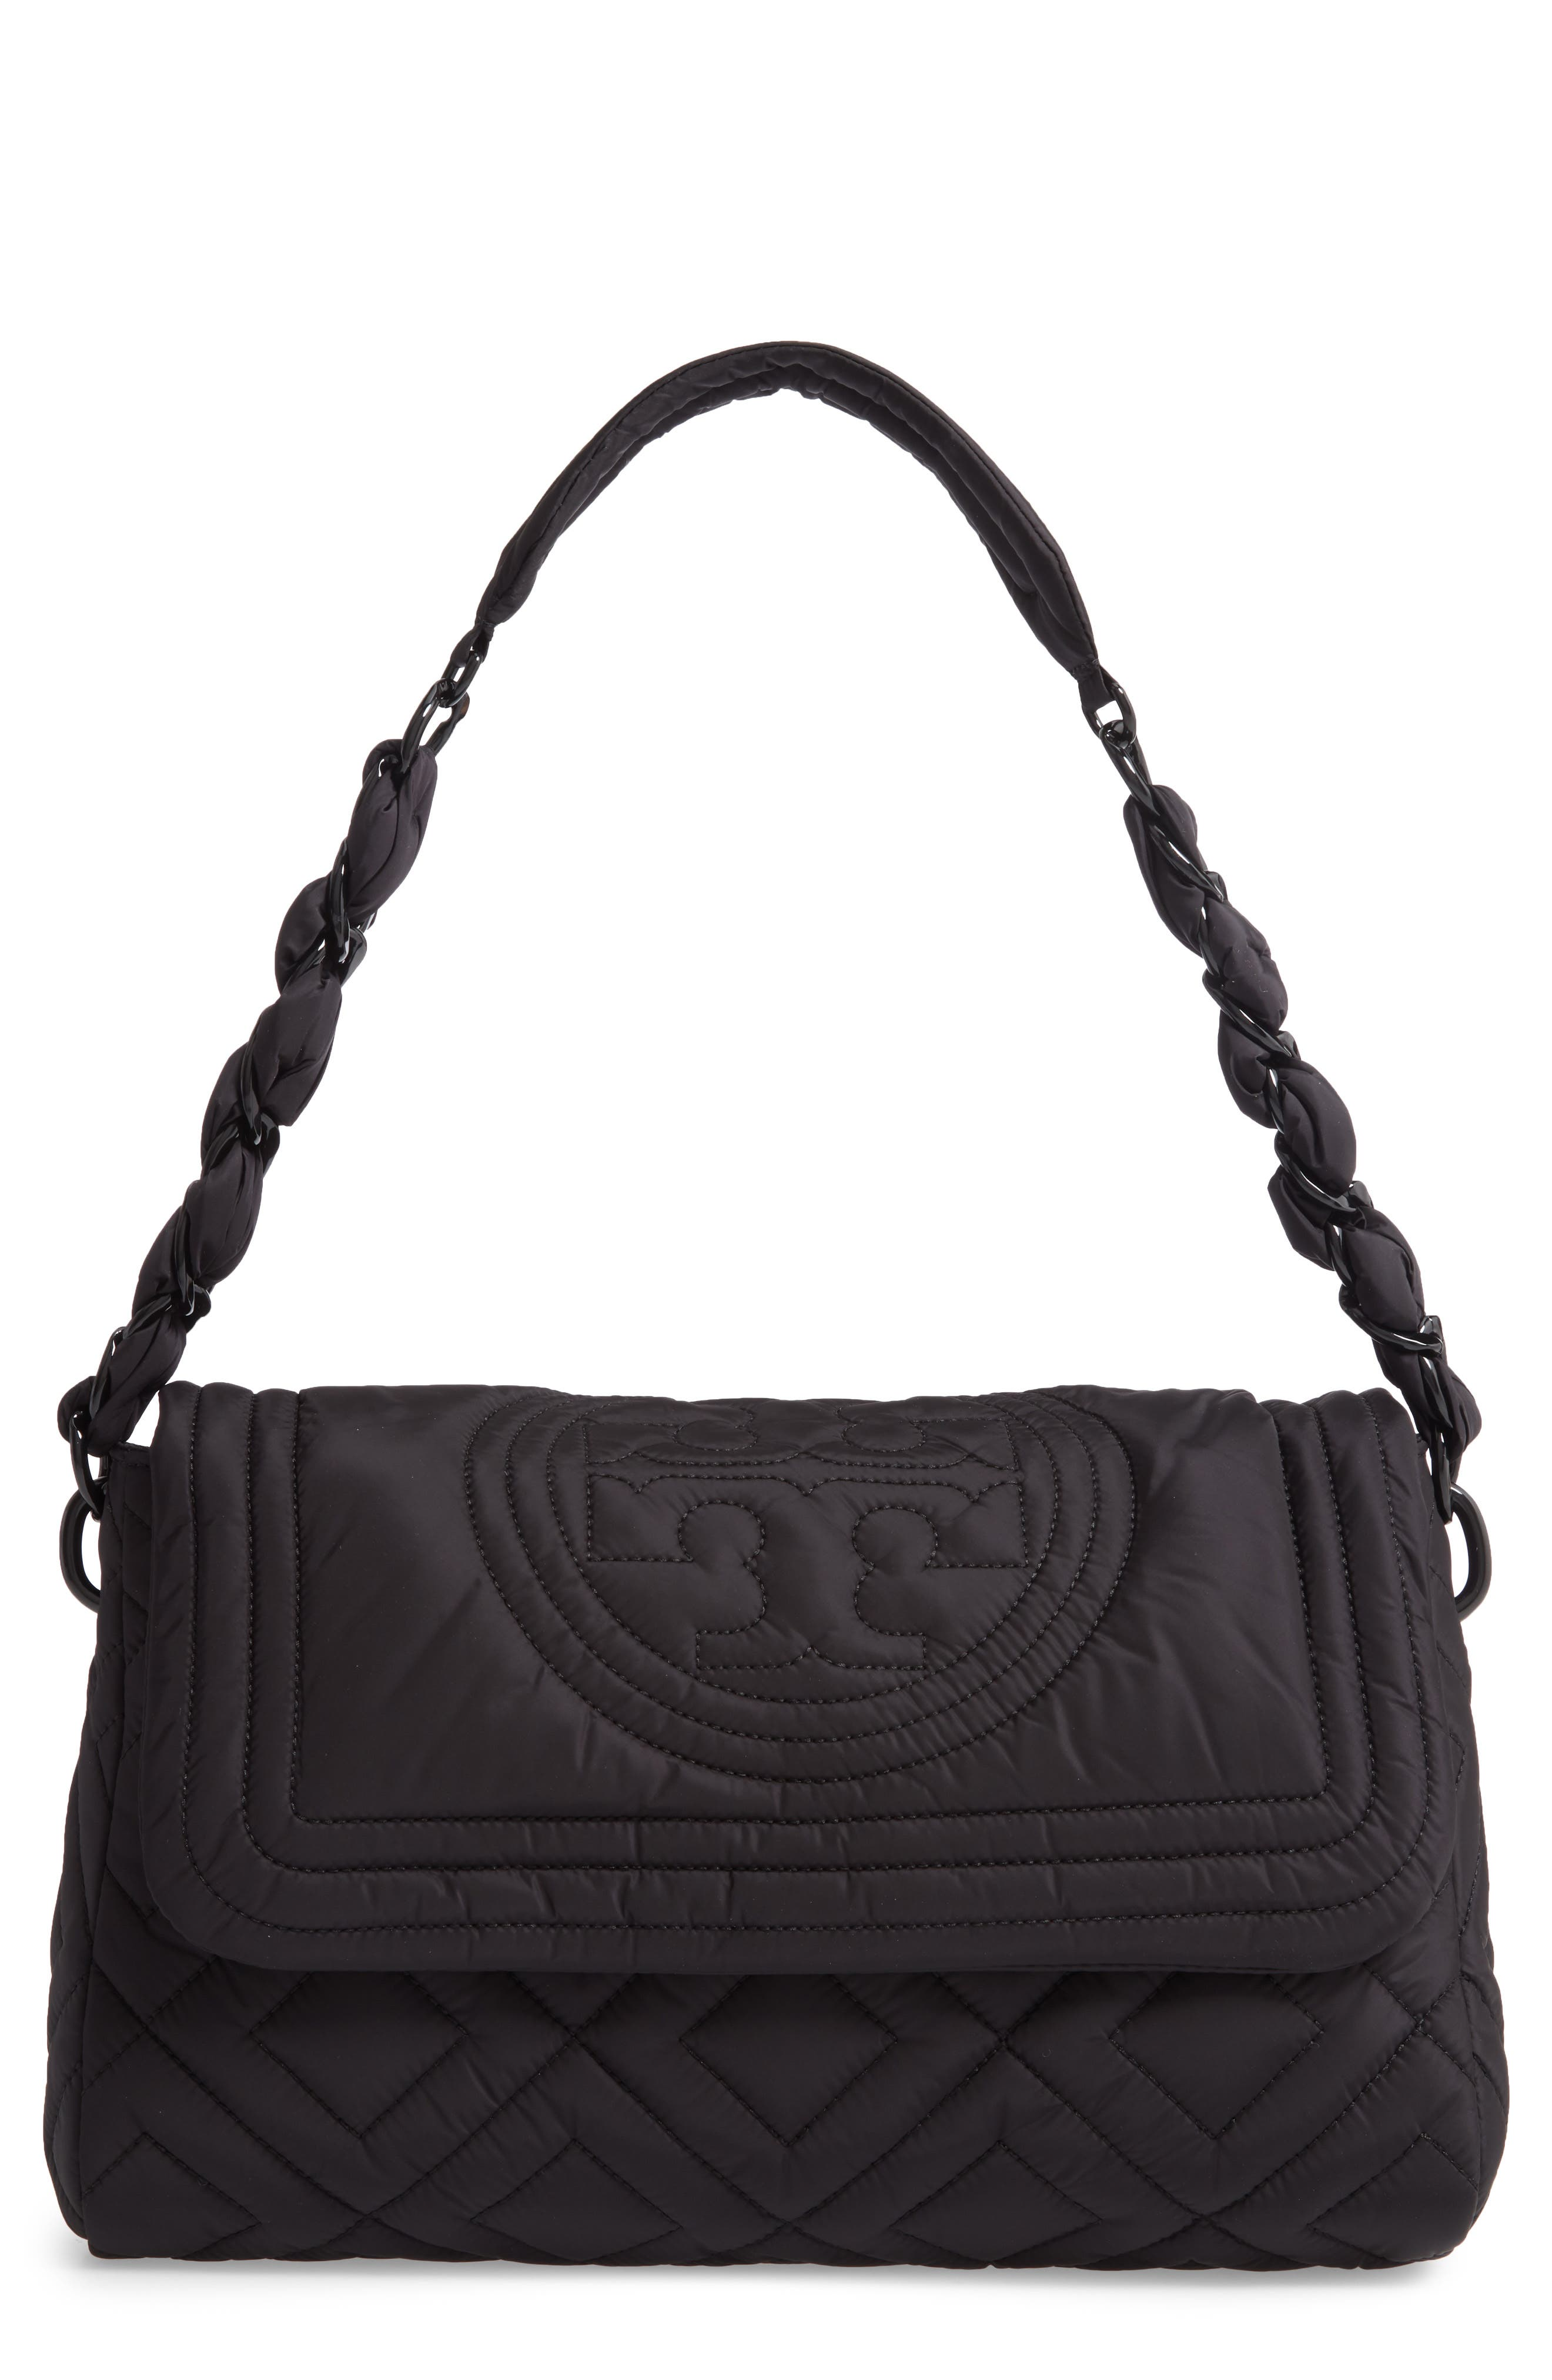 Tory Burch Small Fleming Quilted Nylon Shoulder Bag